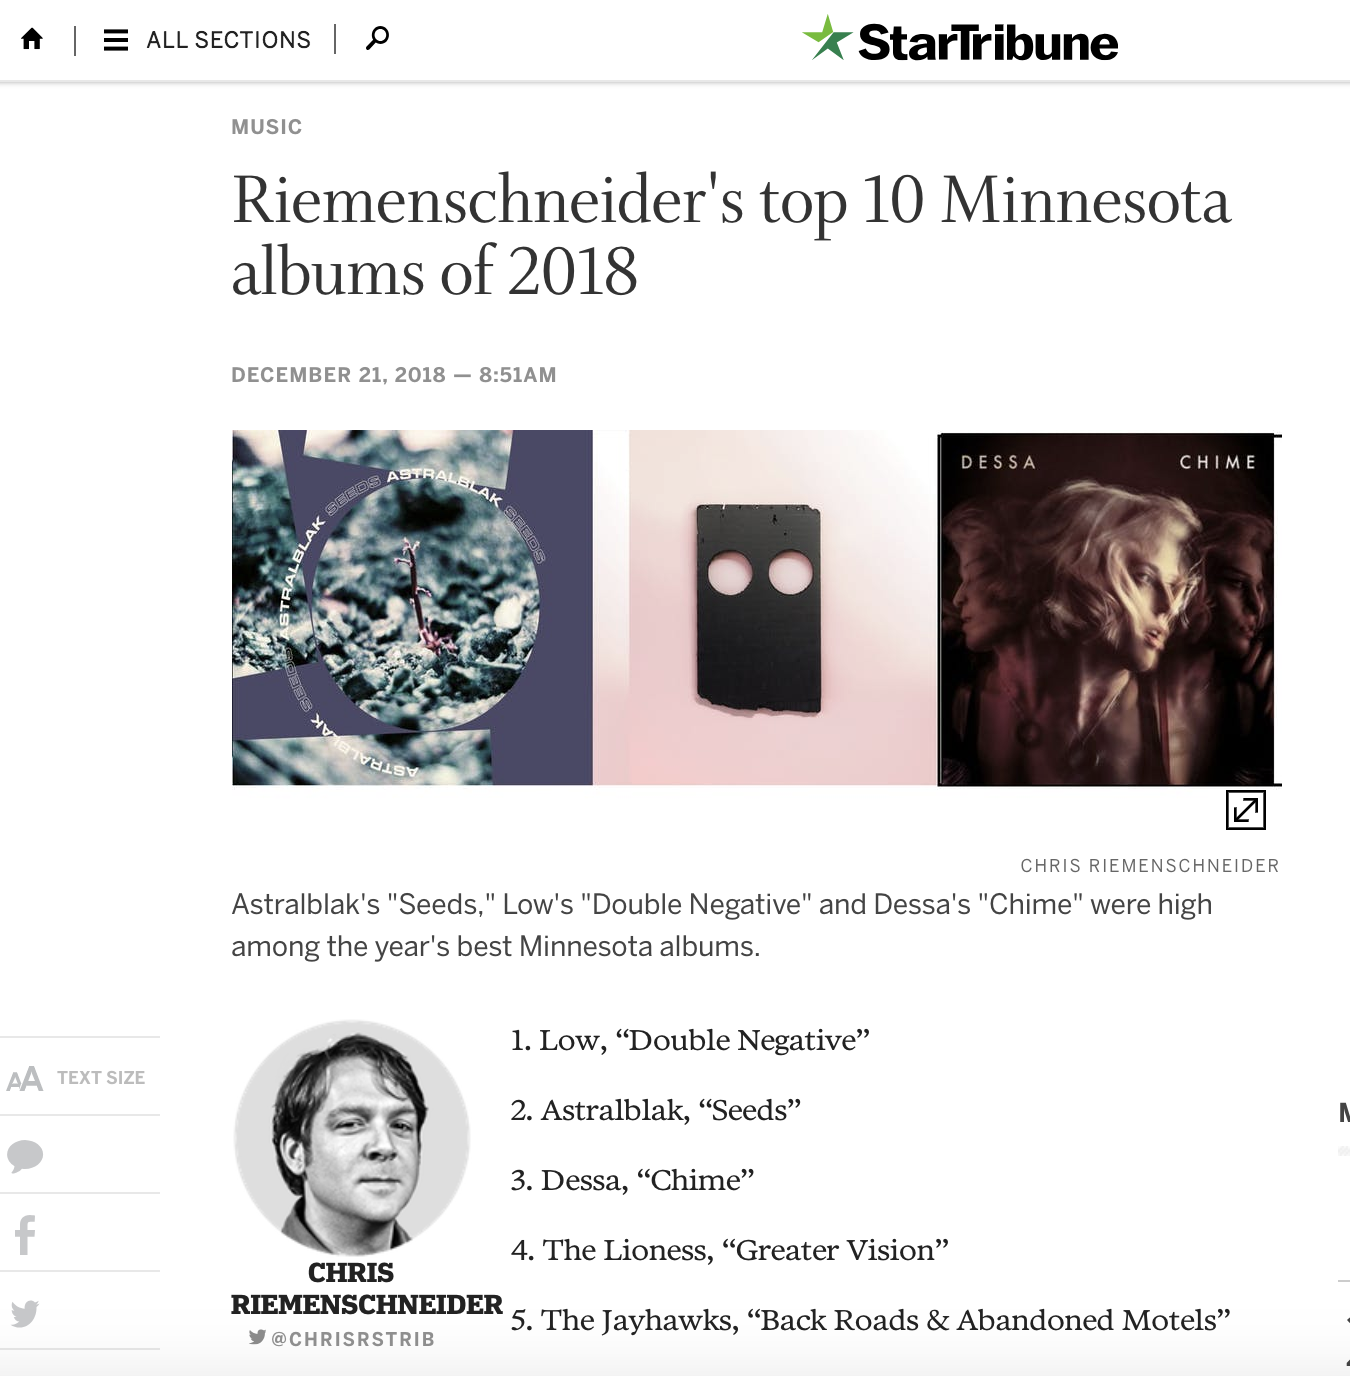 "Riemenschneider's top 10 Minnesota albums of 2018  Astralblak's ""Seeds,"" Low's ""Double Negative"" and Dessa's ""Chime"" were high among the year's best Minnesota albums.  1. Low, ""Double Negative""  2. Astralblak, ""Seeds""  3. Dessa, ""Chime""  4. The Lioness, ""Greater Vision""  5. The Jayhawks, ""Back Roads & Abandoned Motels""  6. Trampled by Turtles, ""Life Is Good on the Open Road""  7. Catbath, ""Glitterbox""  8. Kitten Forever, ""Semi-Permanent""  9. Dwynell Roland, ""Young Roland""  10. The Bad Man, ""Laughing With Bad Teeth""     http://www.startribune.com/riemenschneider-s-top-10-minnesota-albums-of-2018/503322512"